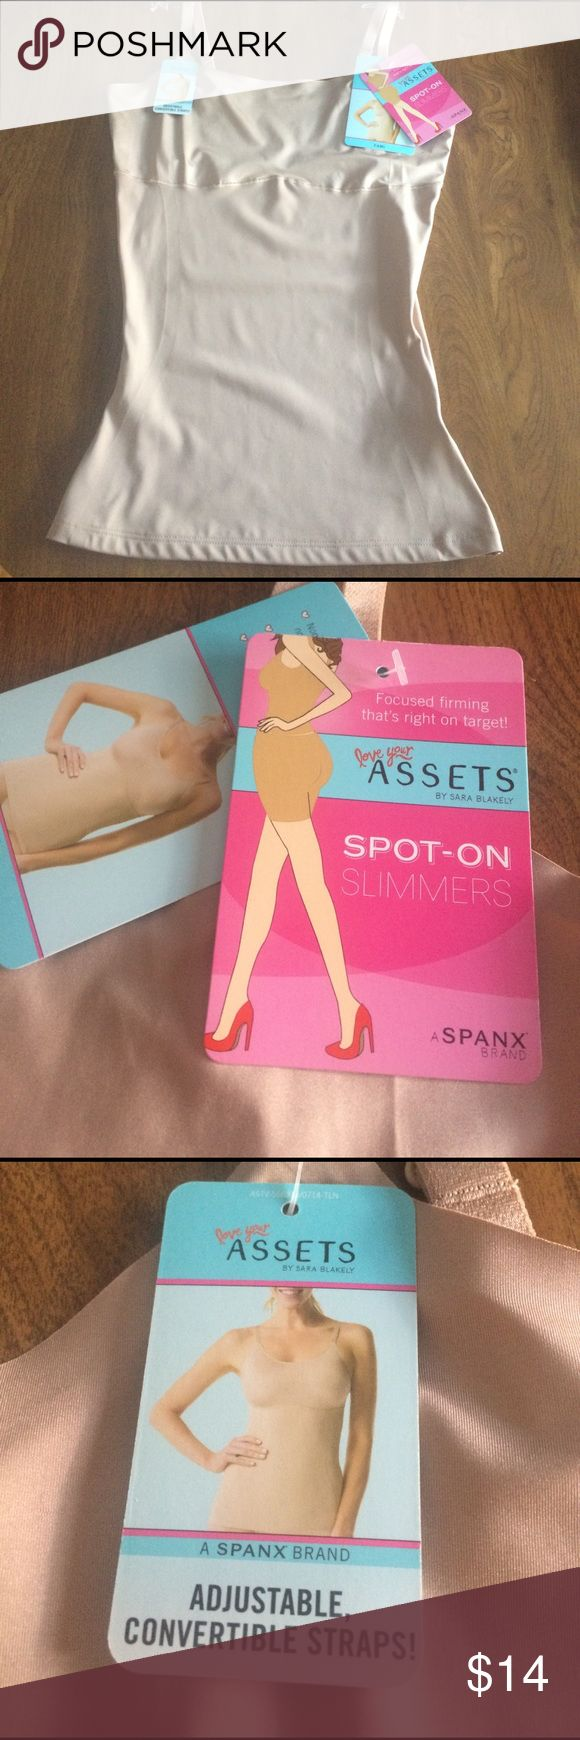 New ASSETS by SPANX,Spot-On Slimmers,Camisole Med. New with tags, Spot-On Slimmers Camisole. Color is beige. Size is medium. Assets by Spanx Intimates & Sleepwear Shapewear